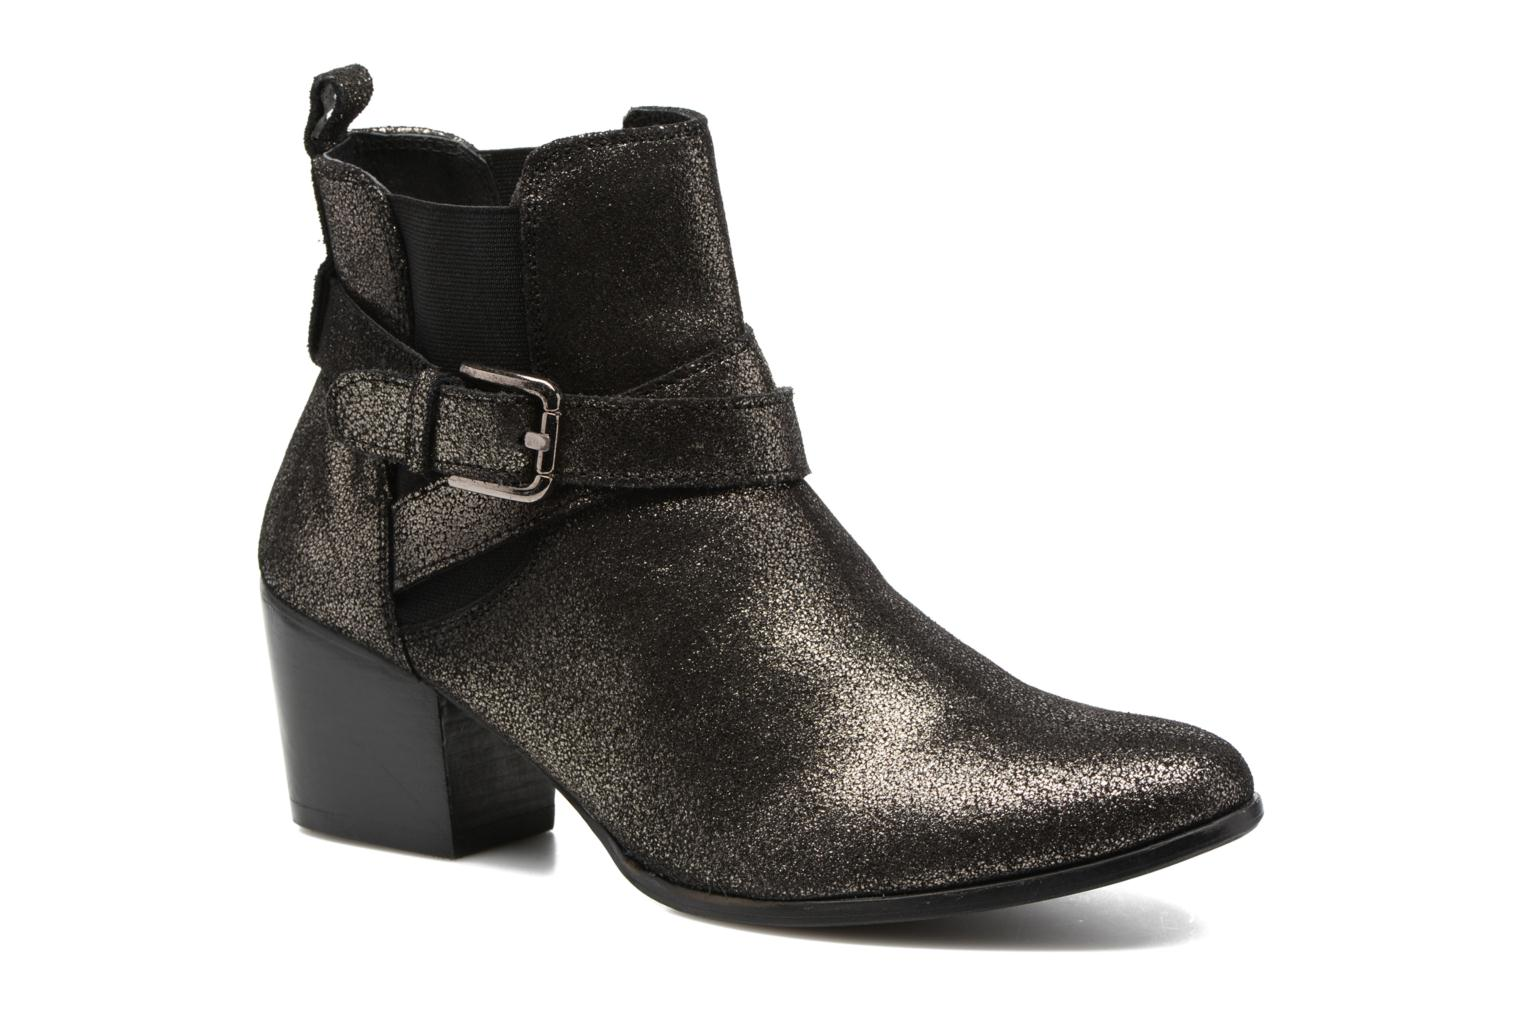 Marques Chaussure femme Gioseppo femme Rhode Pewter